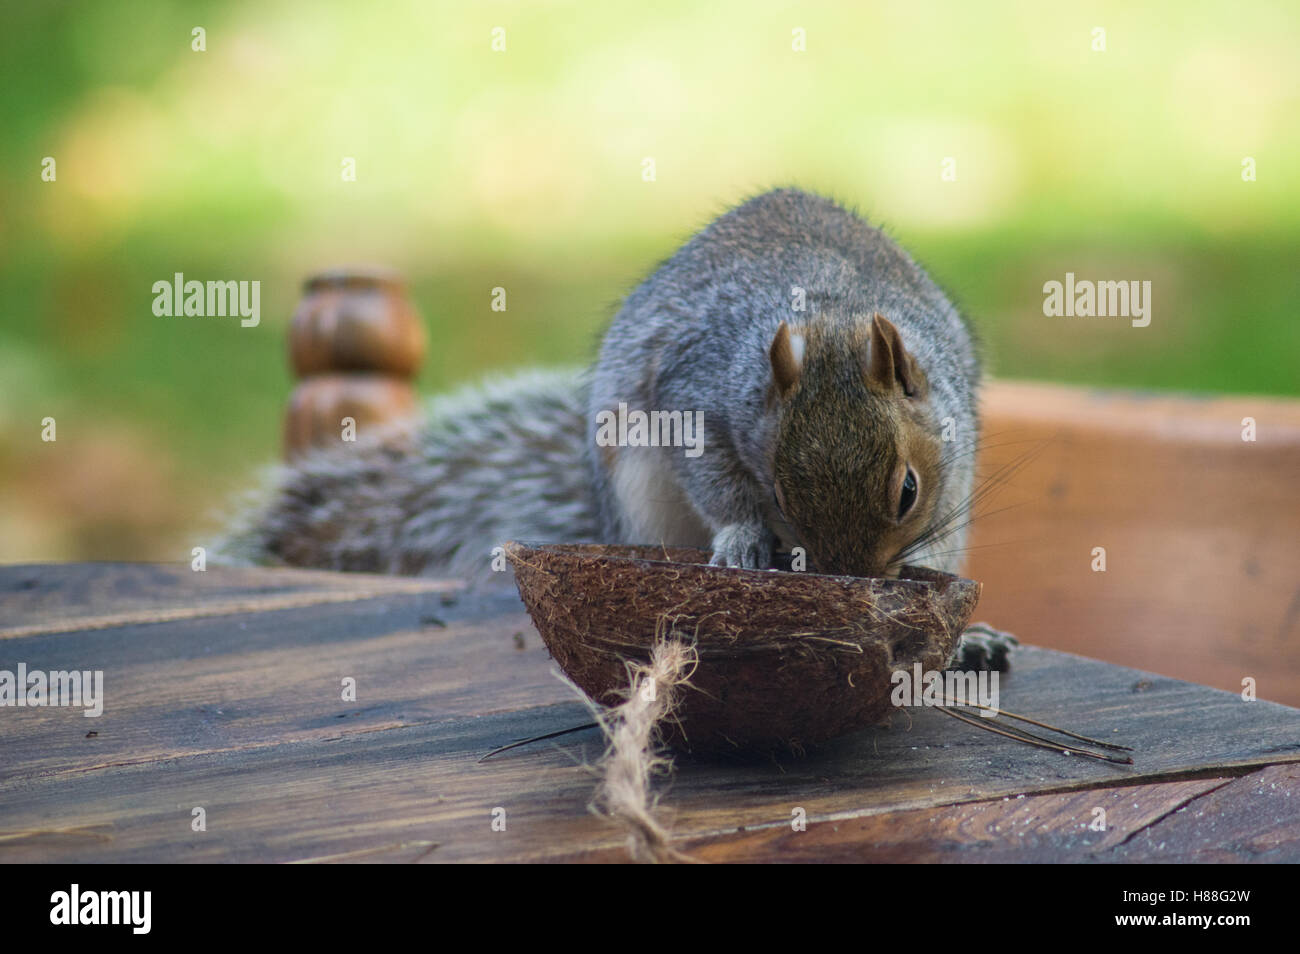 Grey squirrel in autumn feeding on coconut in a garden in Wales - Stock Image